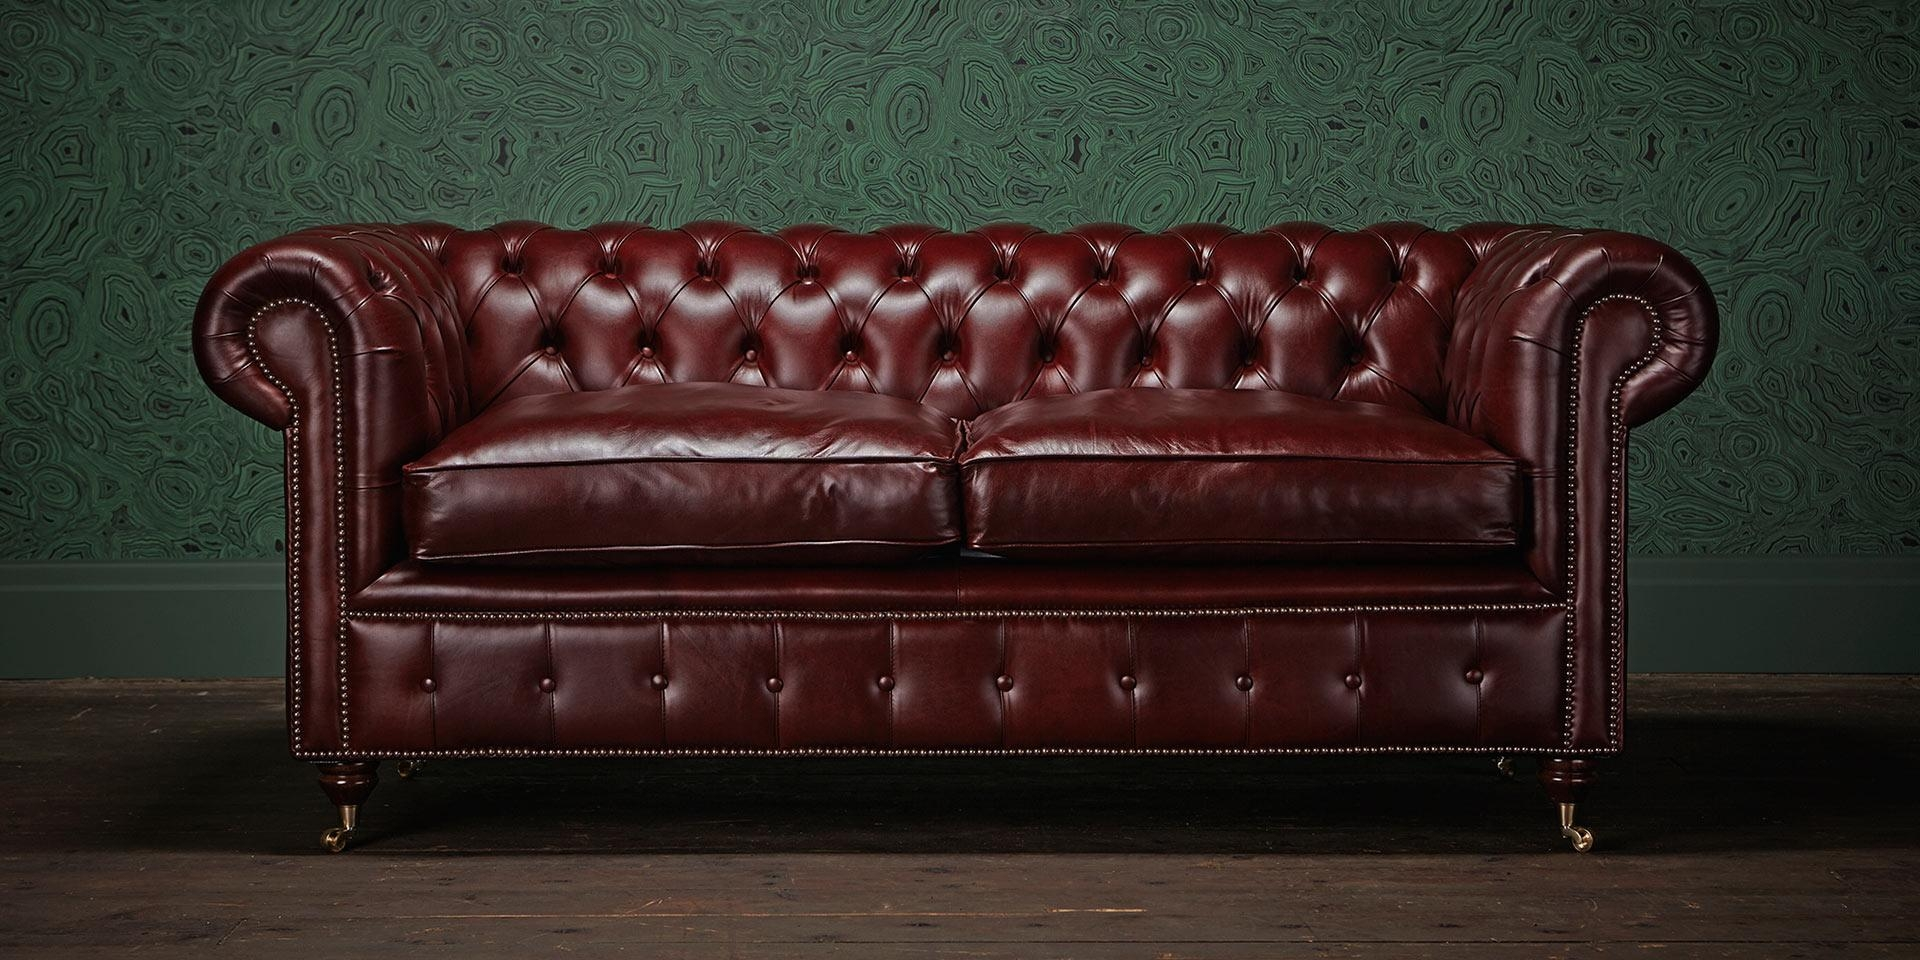 ▻ Sofa : 8 Serene Chesterfield Lear With Chesterfield Lear Sofa Inside Red Chesterfield Sofas (Image 1 of 20)